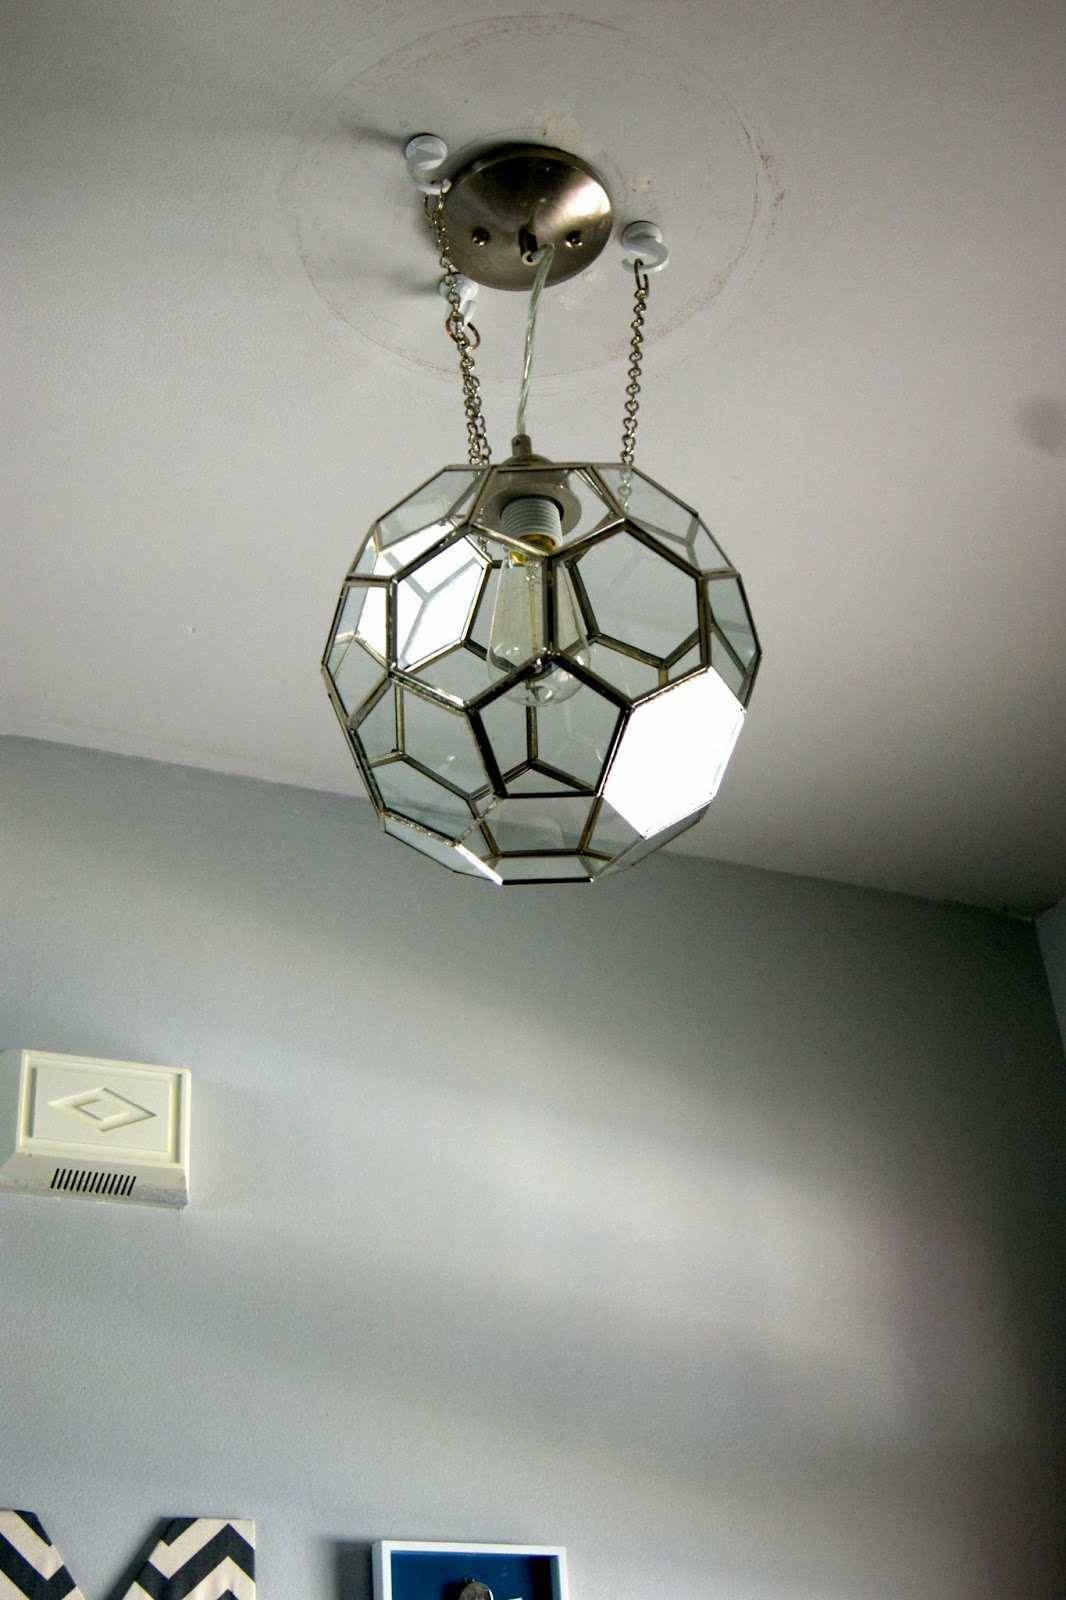 Corner Wall Light Fixture : Geometric Light Fixture Debacle - Ellis & Page